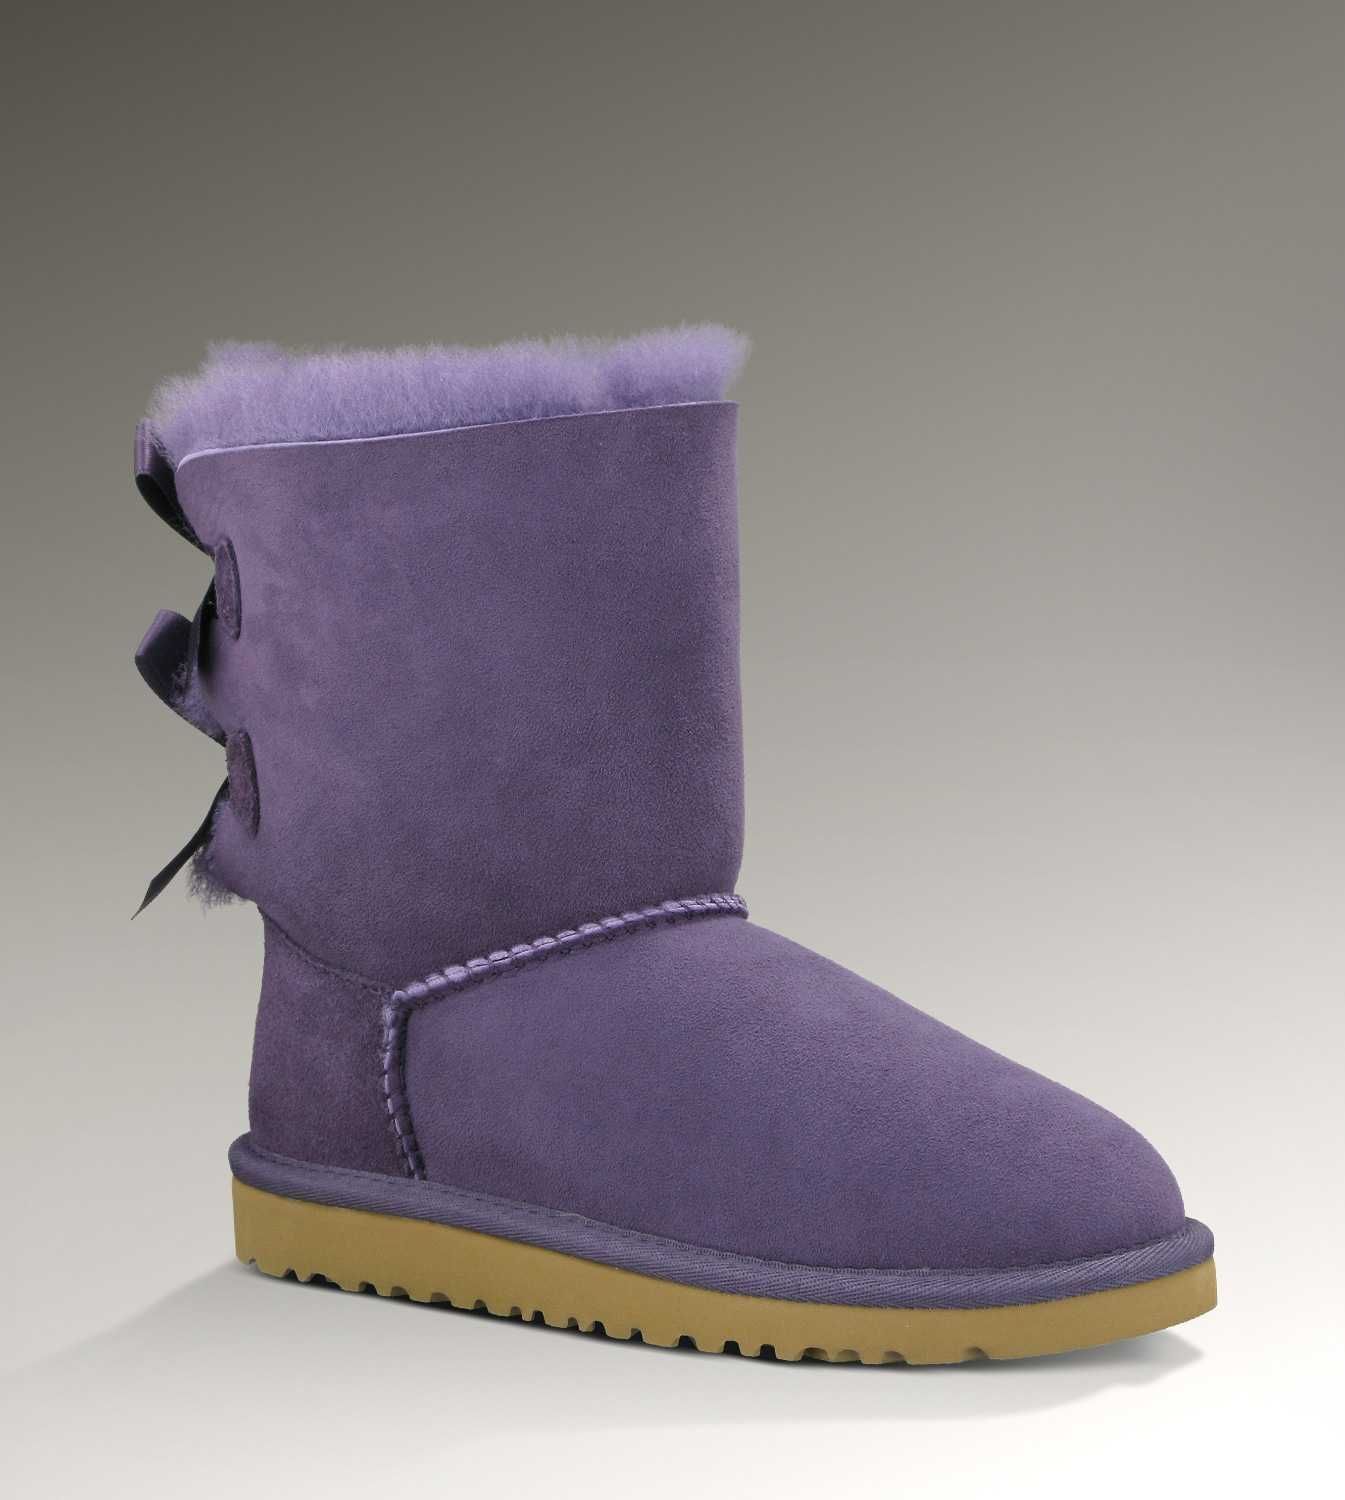 Cheap Uggs Bailey Bow 1002954 Boots For Women [UGG UK 021] - $140.00 :